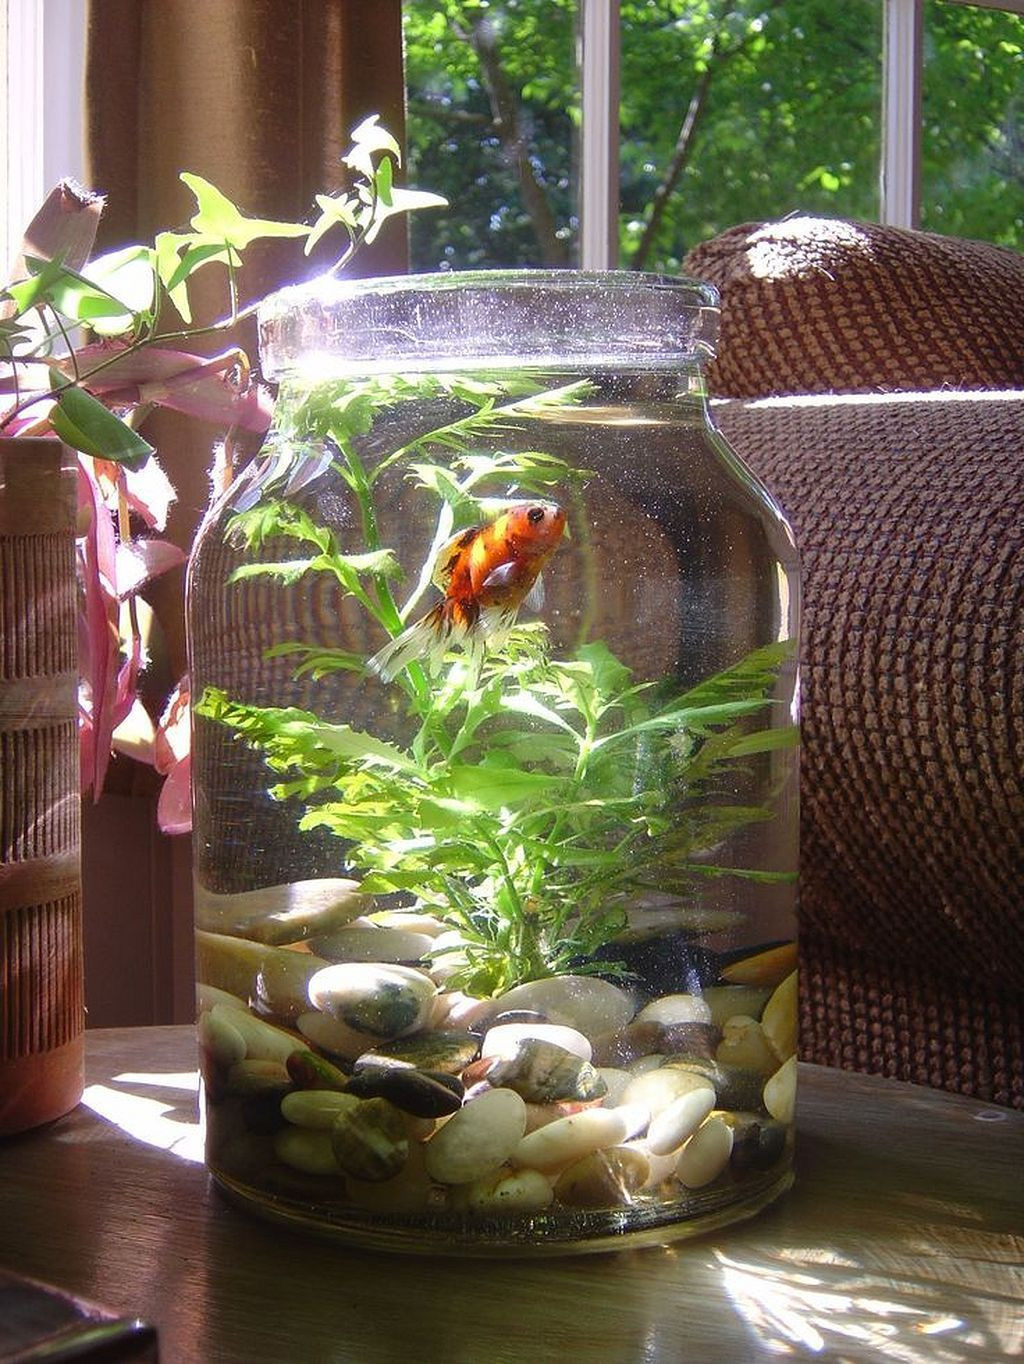 plant vase fish tank of gorgeous 30 awesome fish tank ideas https gardenmagz com 30 with regard to gorgeous 30 awesome fish tank ideas https gardenmagz com 30